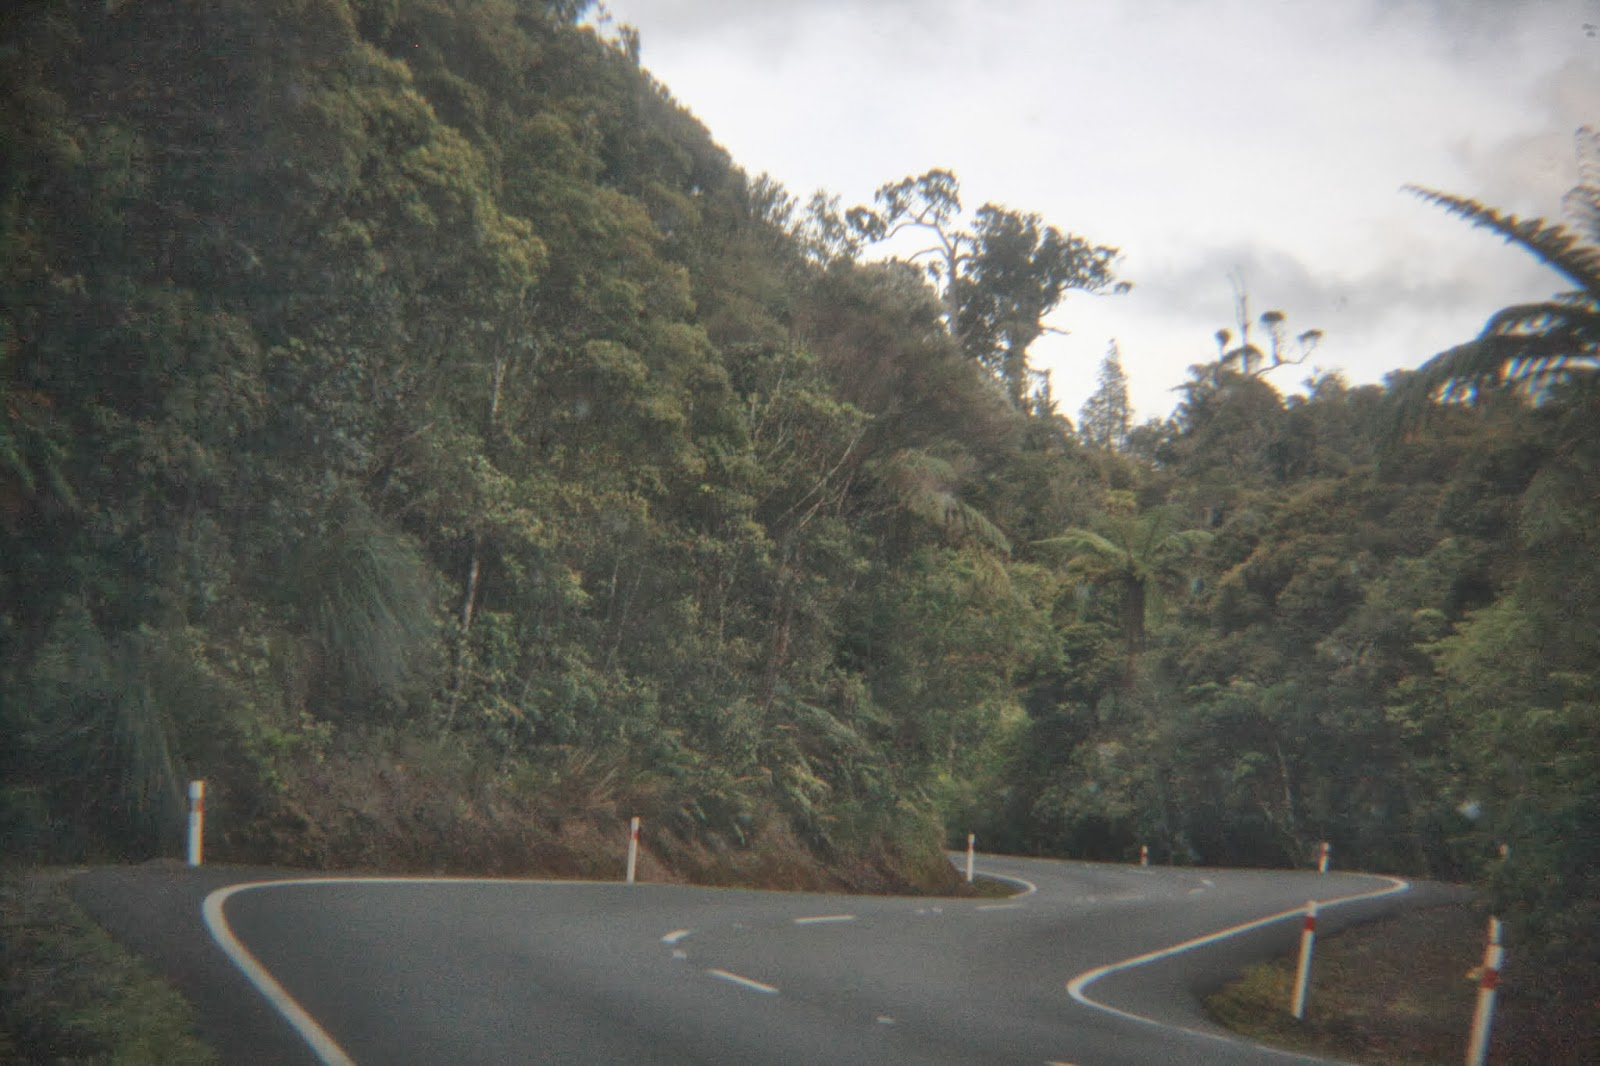 A winding New Zealand road.